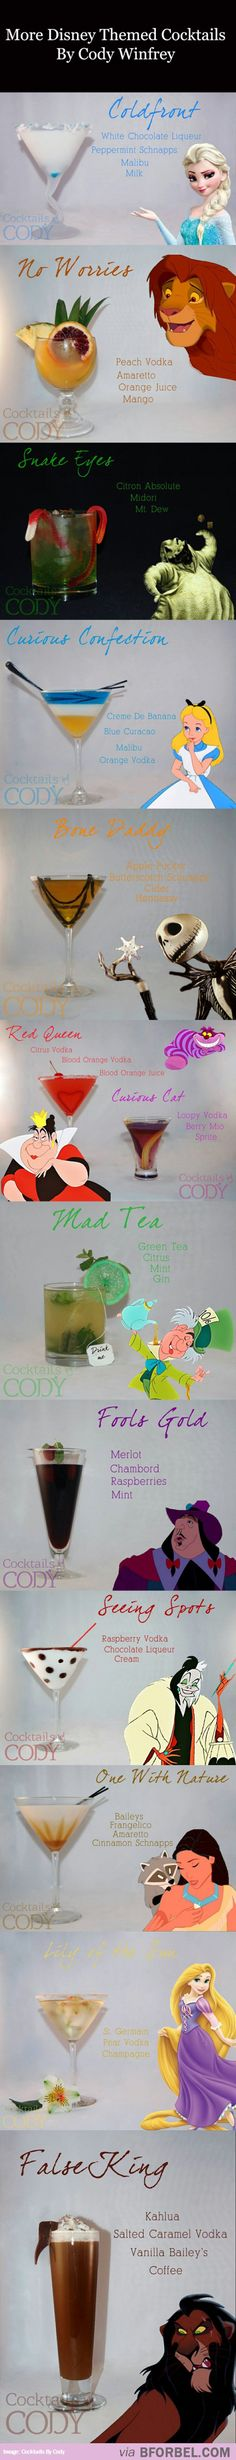 Disney Themes Cocktail Recipes alcohol drinks tea drink recipes party ideas party favors alcohol recipes party themes liquor recipe. recipes martinis